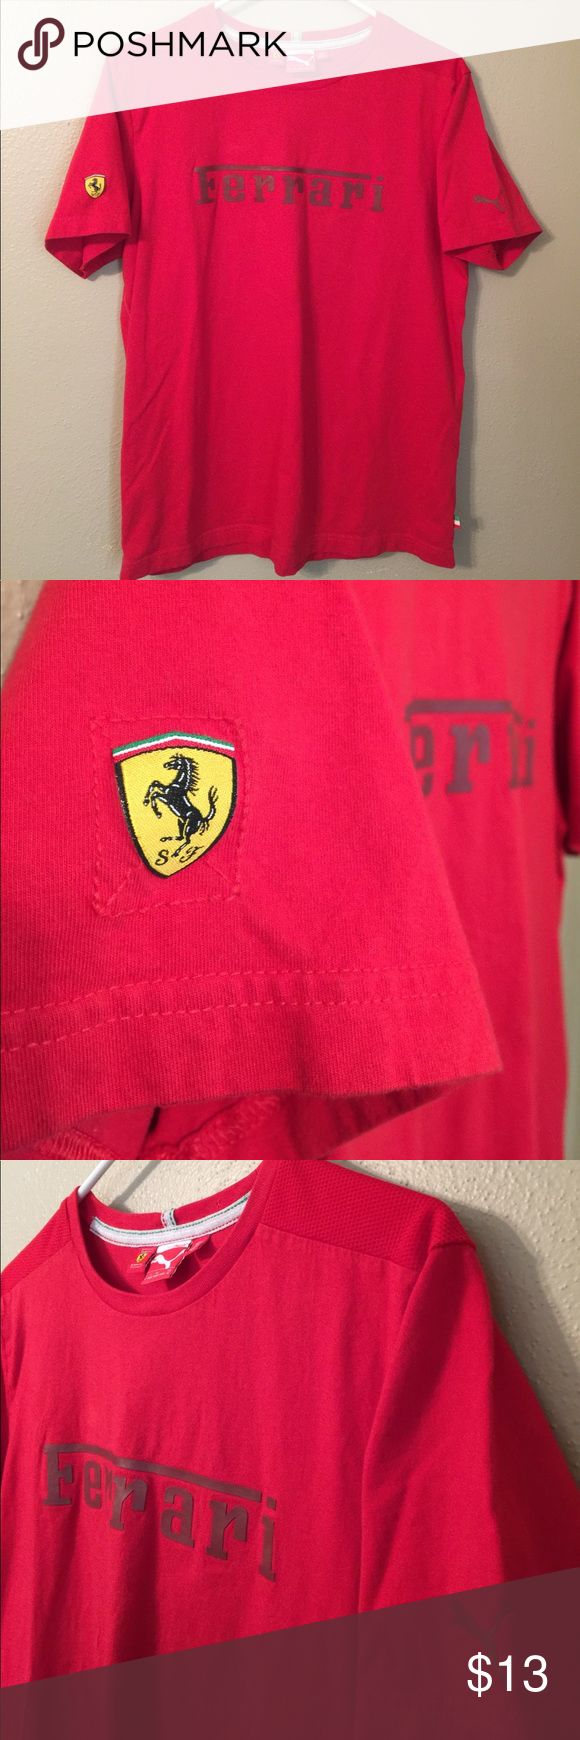 Puma Ferrari T Shirt Red puma logo size medium Gently used. Some wrinkles which can be removed. Official Puma by Ferrari logo tshirt. Stylish designer tee. Size is a men's size medium, could fit women's L/XL.  cPlease see measurements if unsure of size. Mesh type material (not see through) at shoulders, otherwise cotton. Puma and Ferrari logo on sleeves. Price firm ships next day 🔥🔥tags: puma fenty Puma Shirts Tees - Short Sleeve